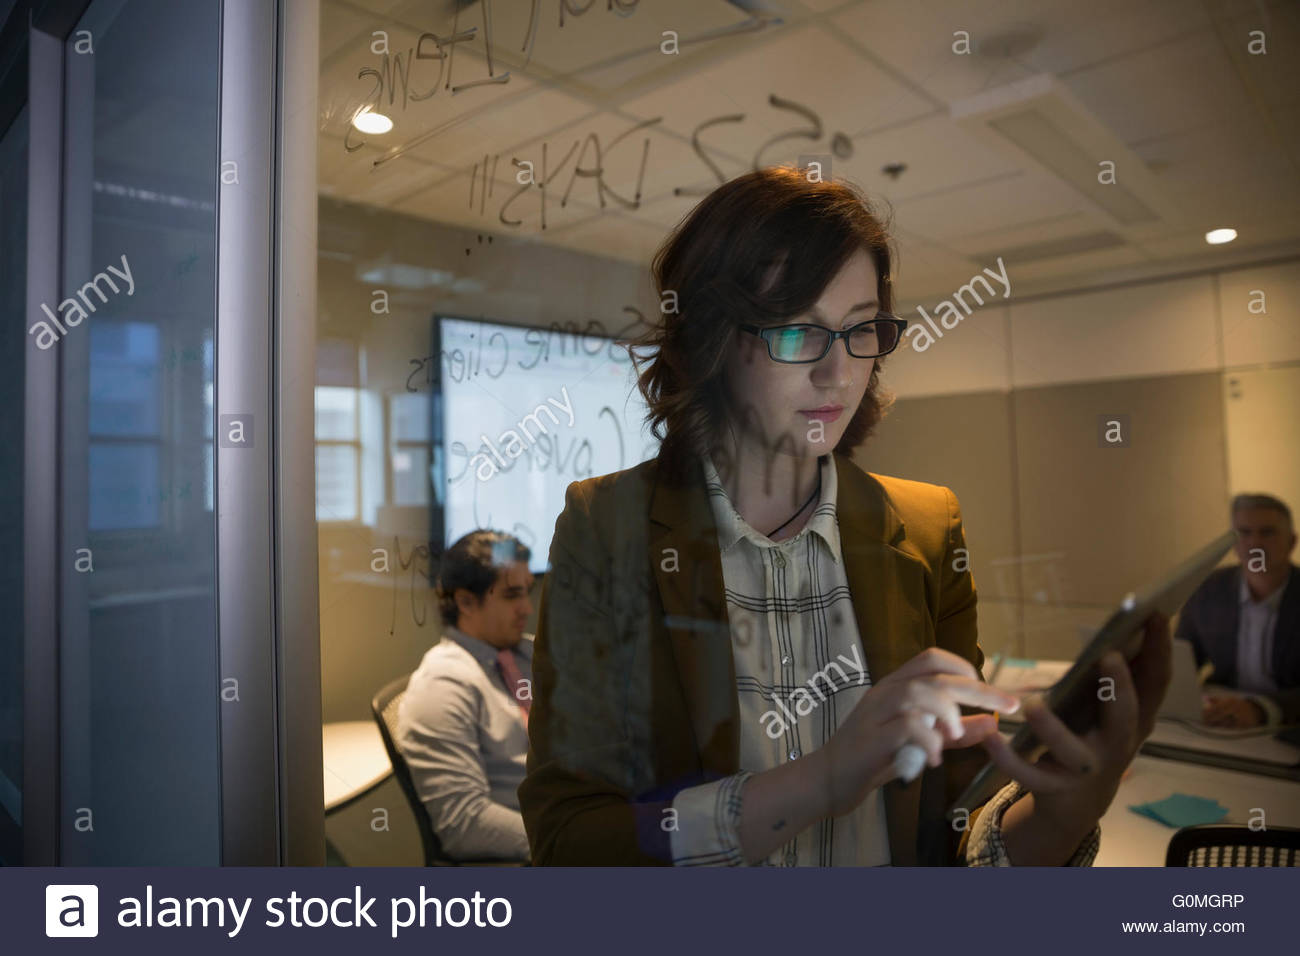 Businesswoman with digital tablet at conference room window - Stock Image